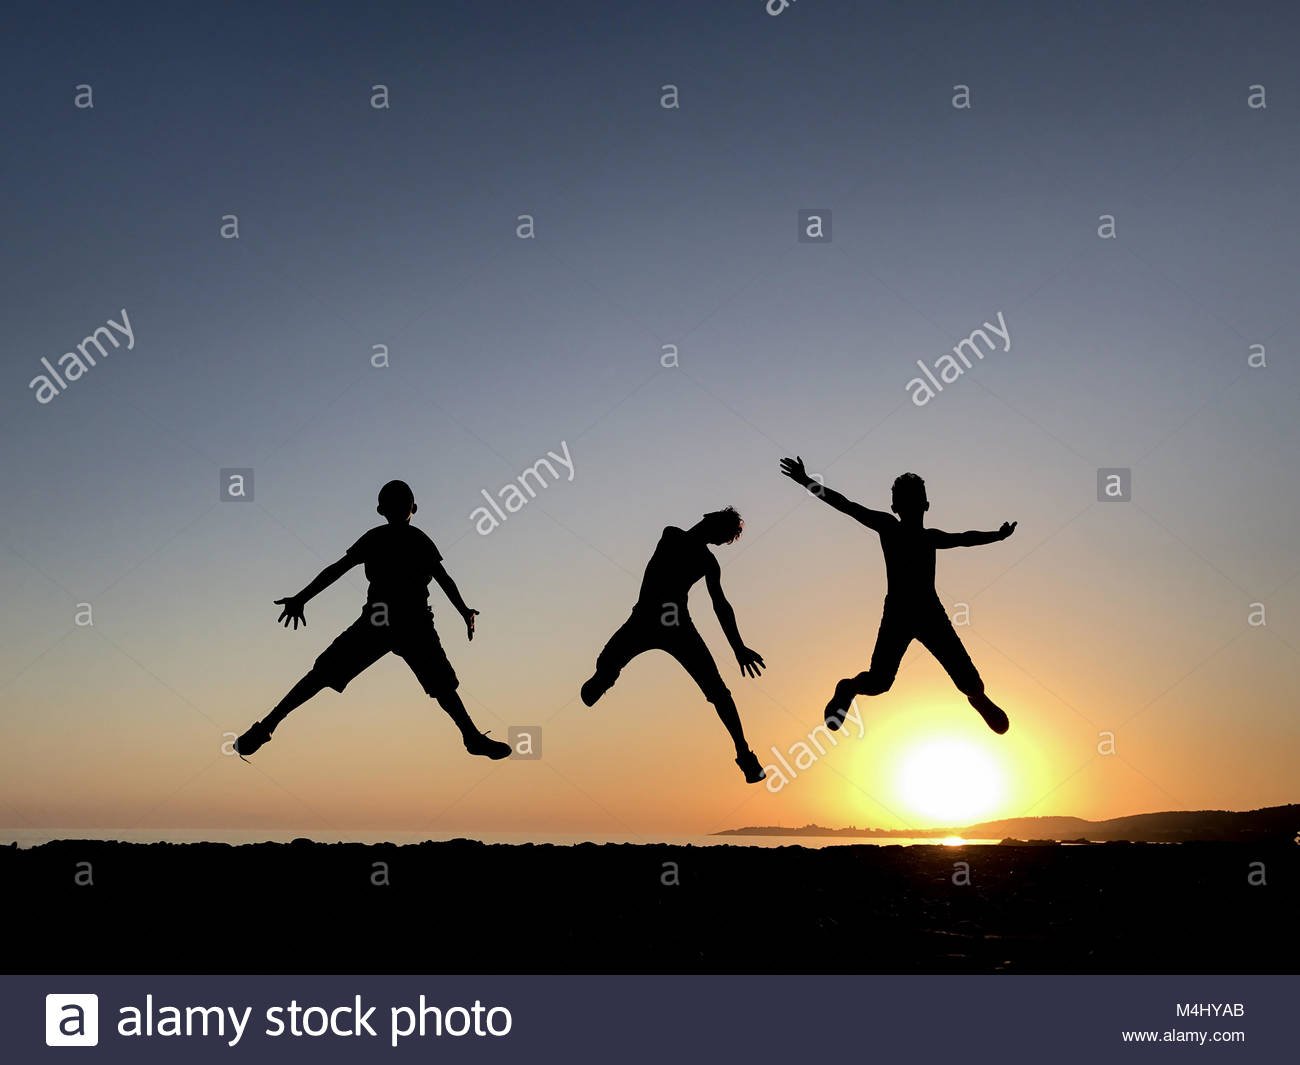 Jumping of energetic and dynamic youngsters - Stock Image